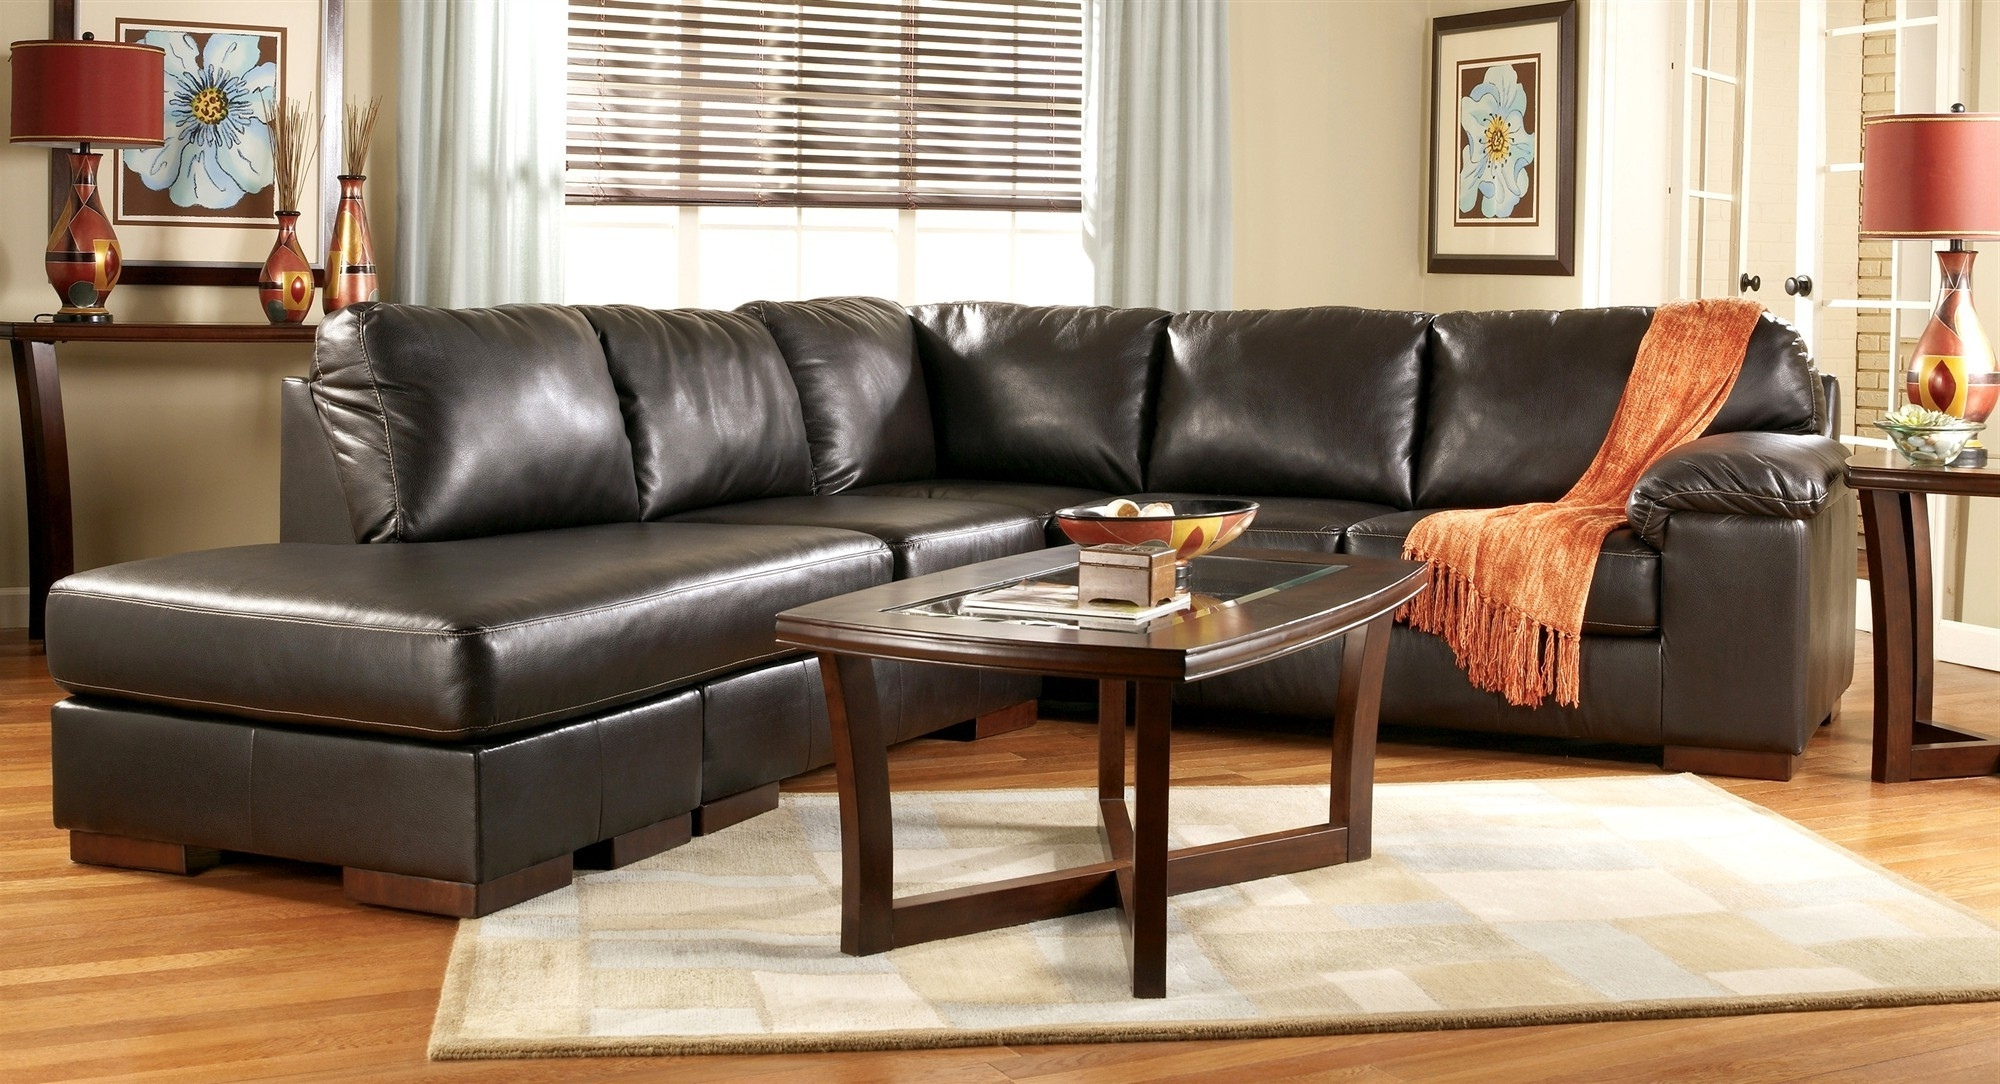 Fashionable Faux Leather Sectional Sofas Intended For Faux Leather Sectional Sofa Ashley Simmons Bonded Leather (View 4 of 20)